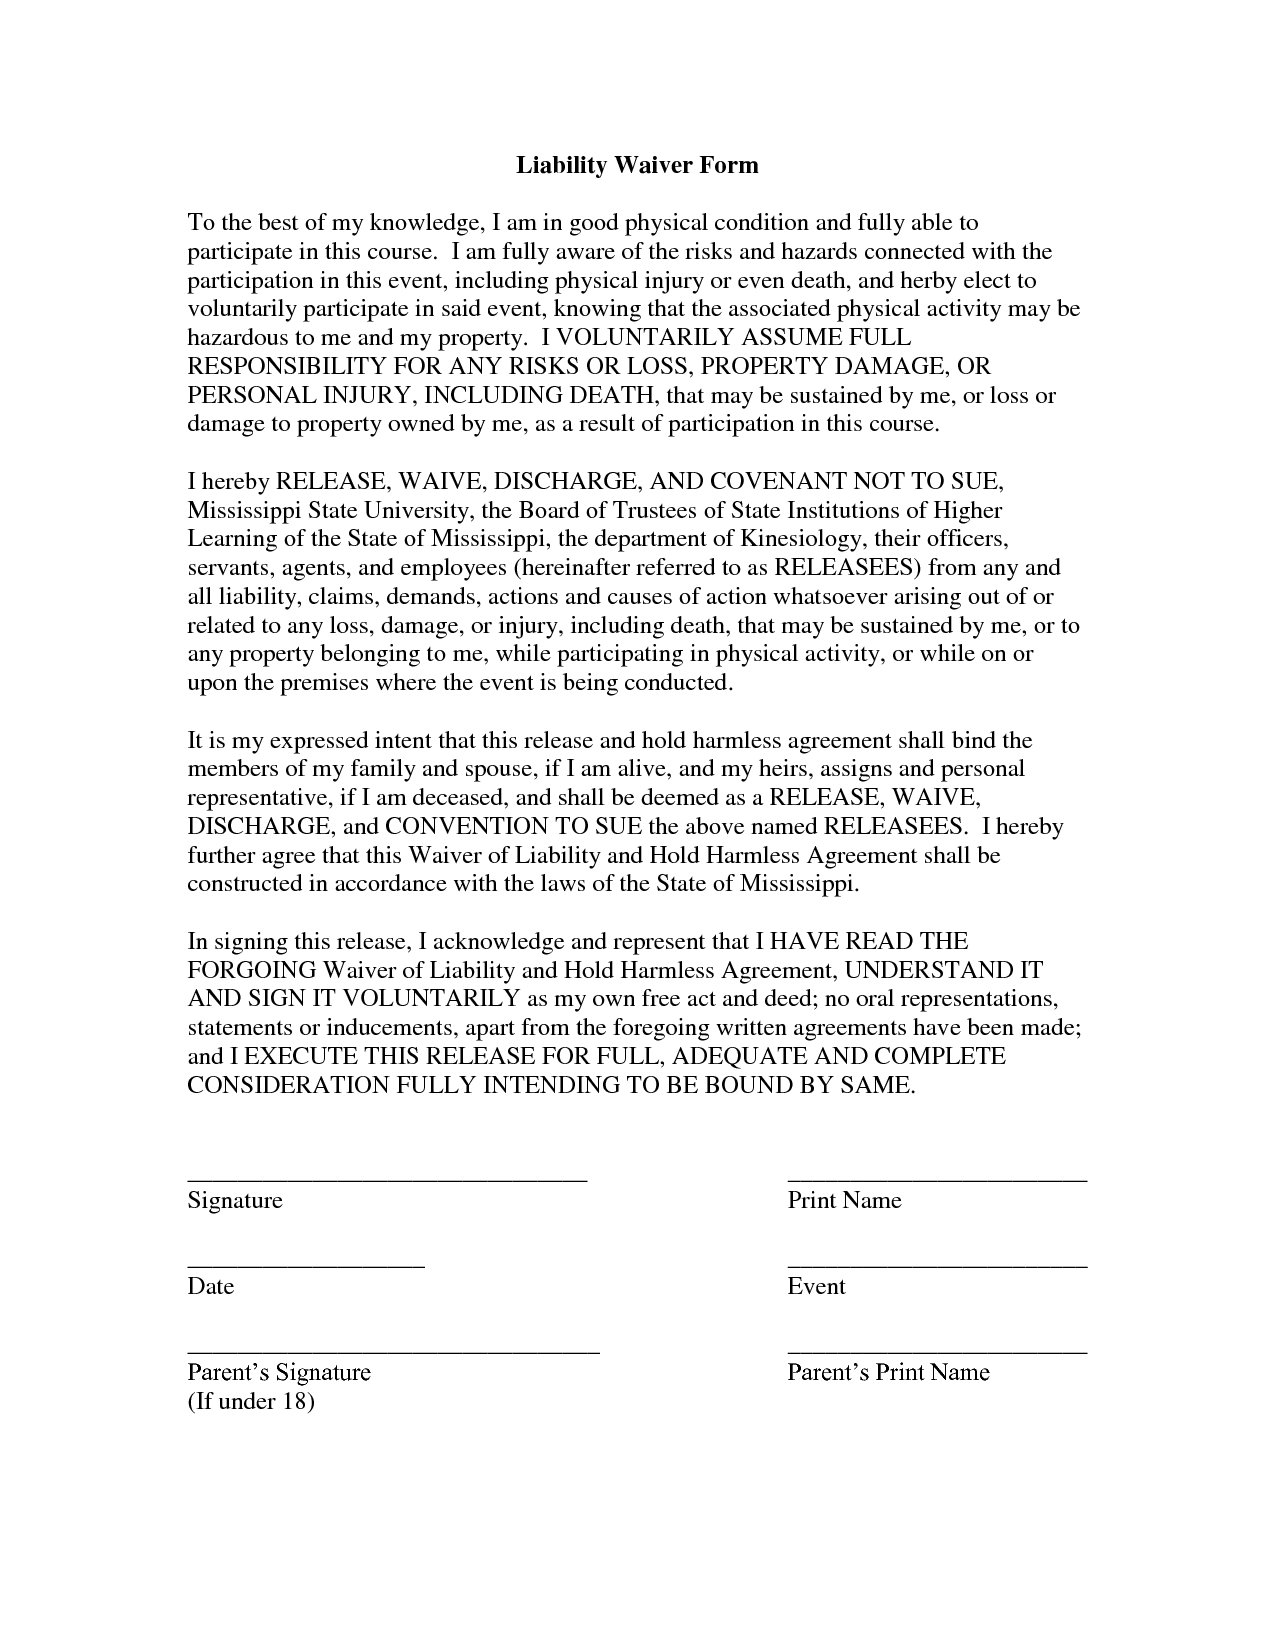 free liability waiver form